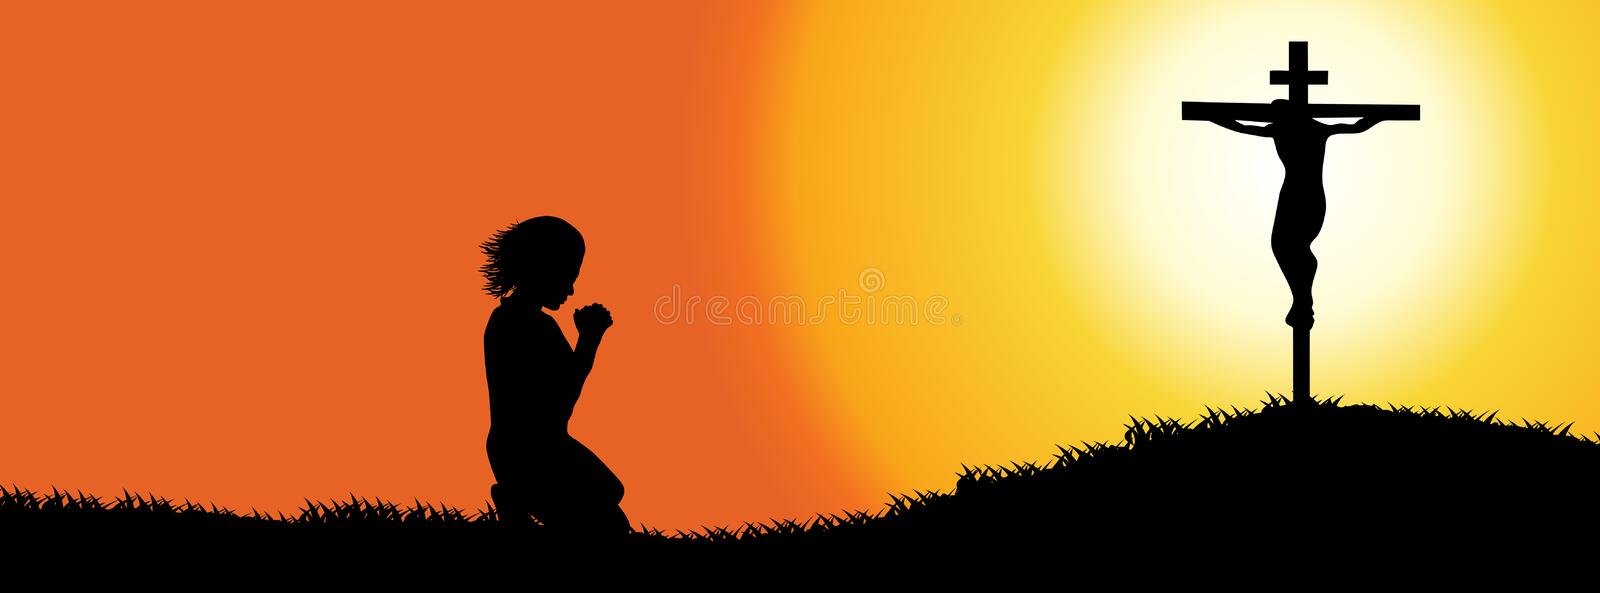 Timeline Cover. Prayer Silhouette Royalty Free Stock Images